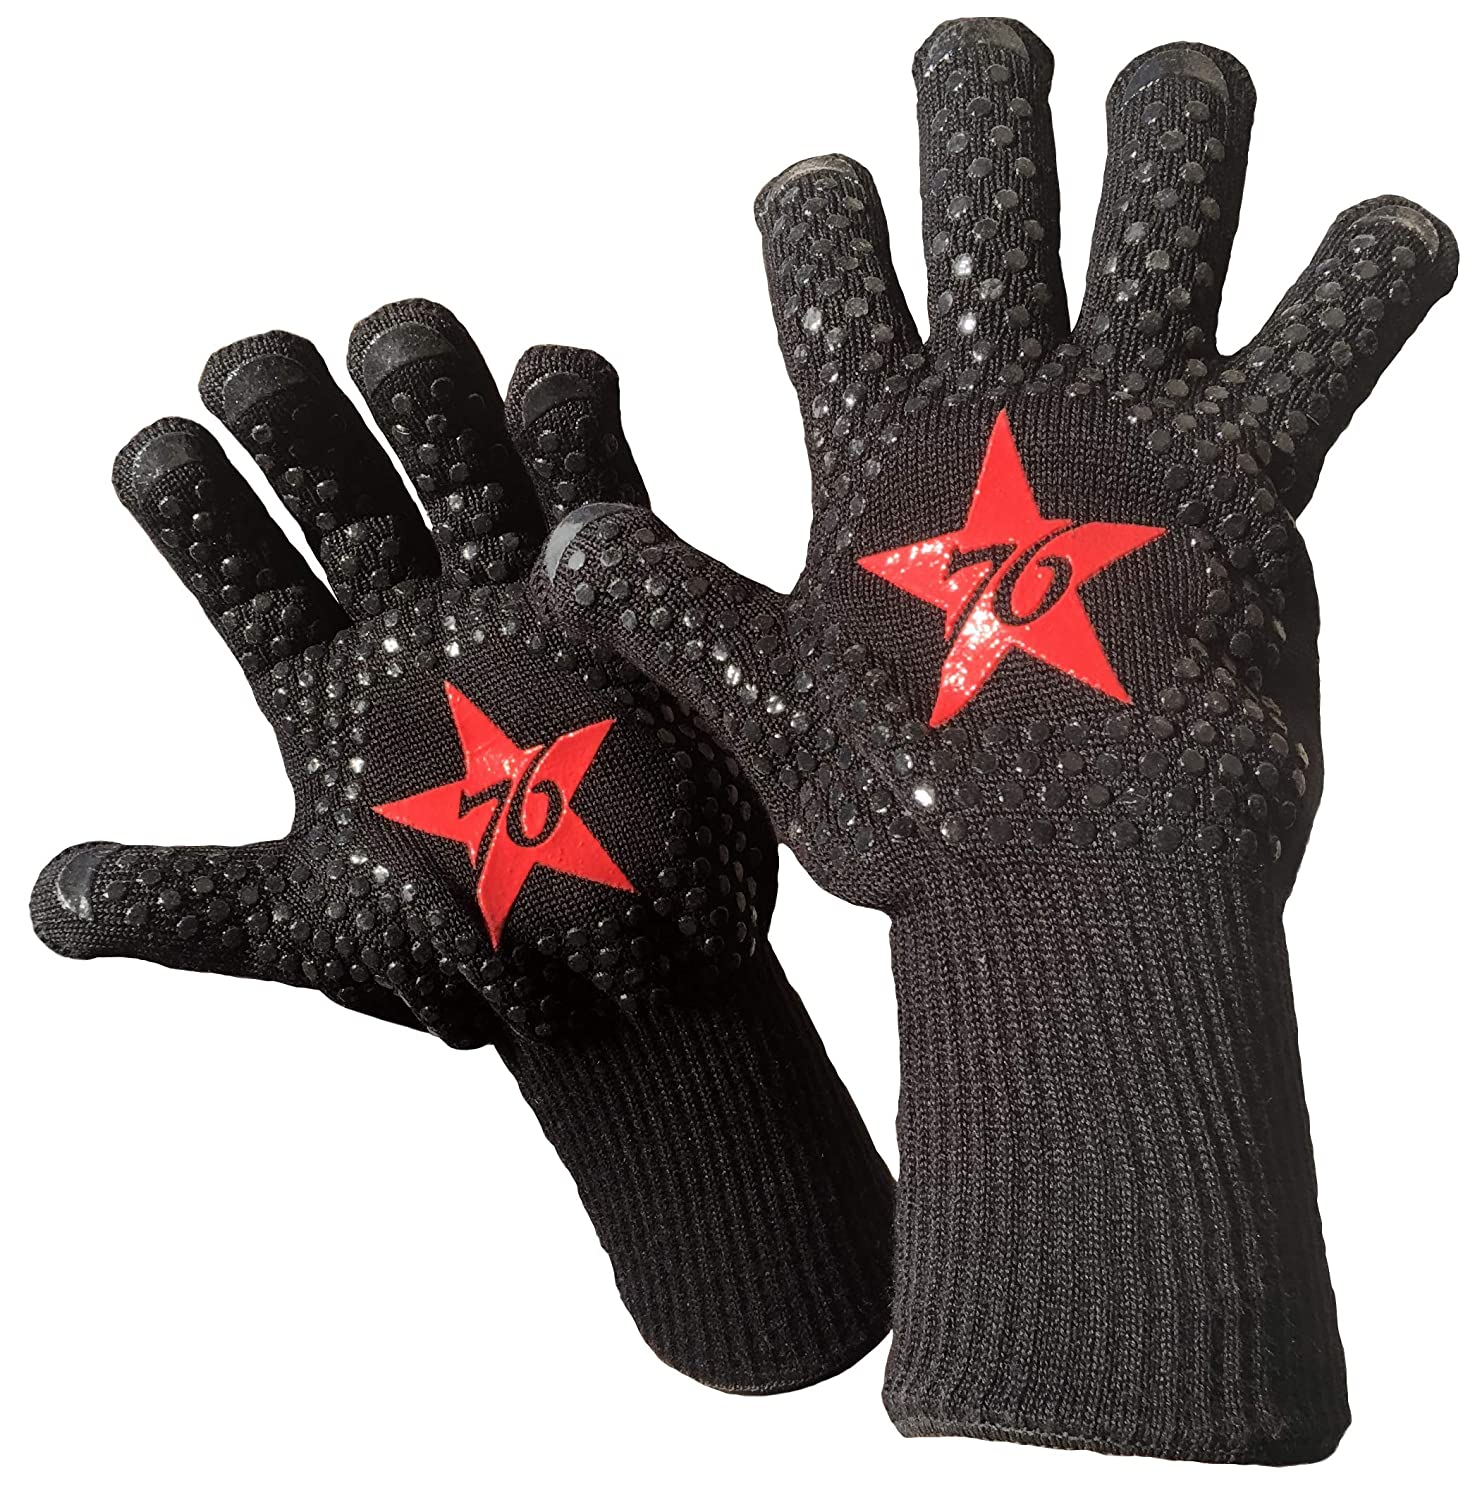 Patriot '76 Extreme Heat Resistant BBQ Gloves EN407-932°F Certified | High Dexterity Grill Gloves | Premium Oven Gloves & Grilling Gloves | Green Egg Accessories and Pizza Oven Accessories